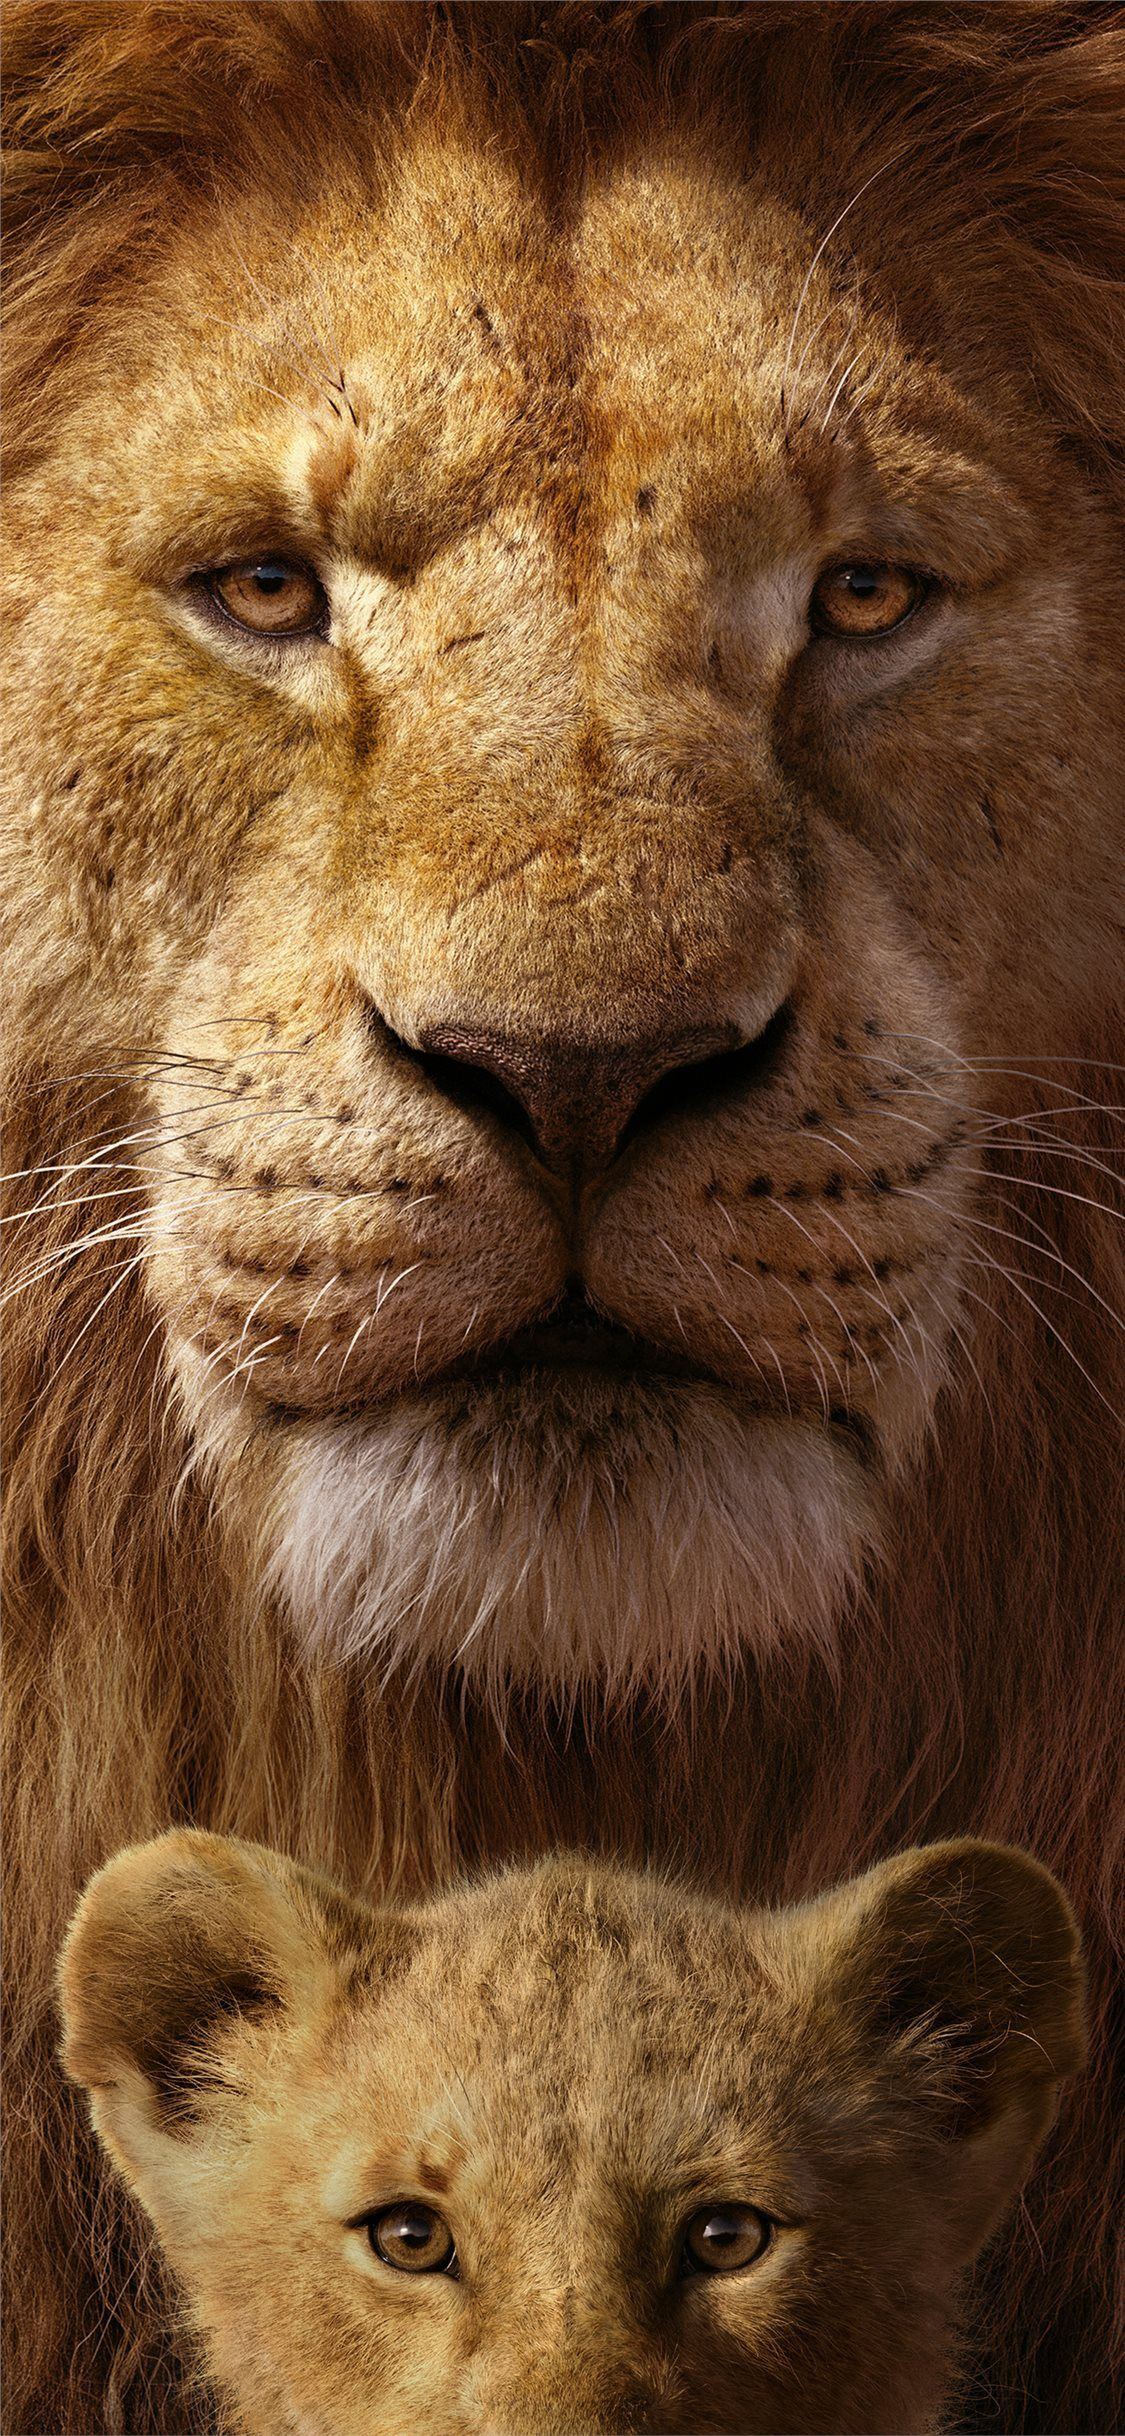 The Lion King 8k Wallpaper Lion King Pictures Lion King Movie Lion Pictures